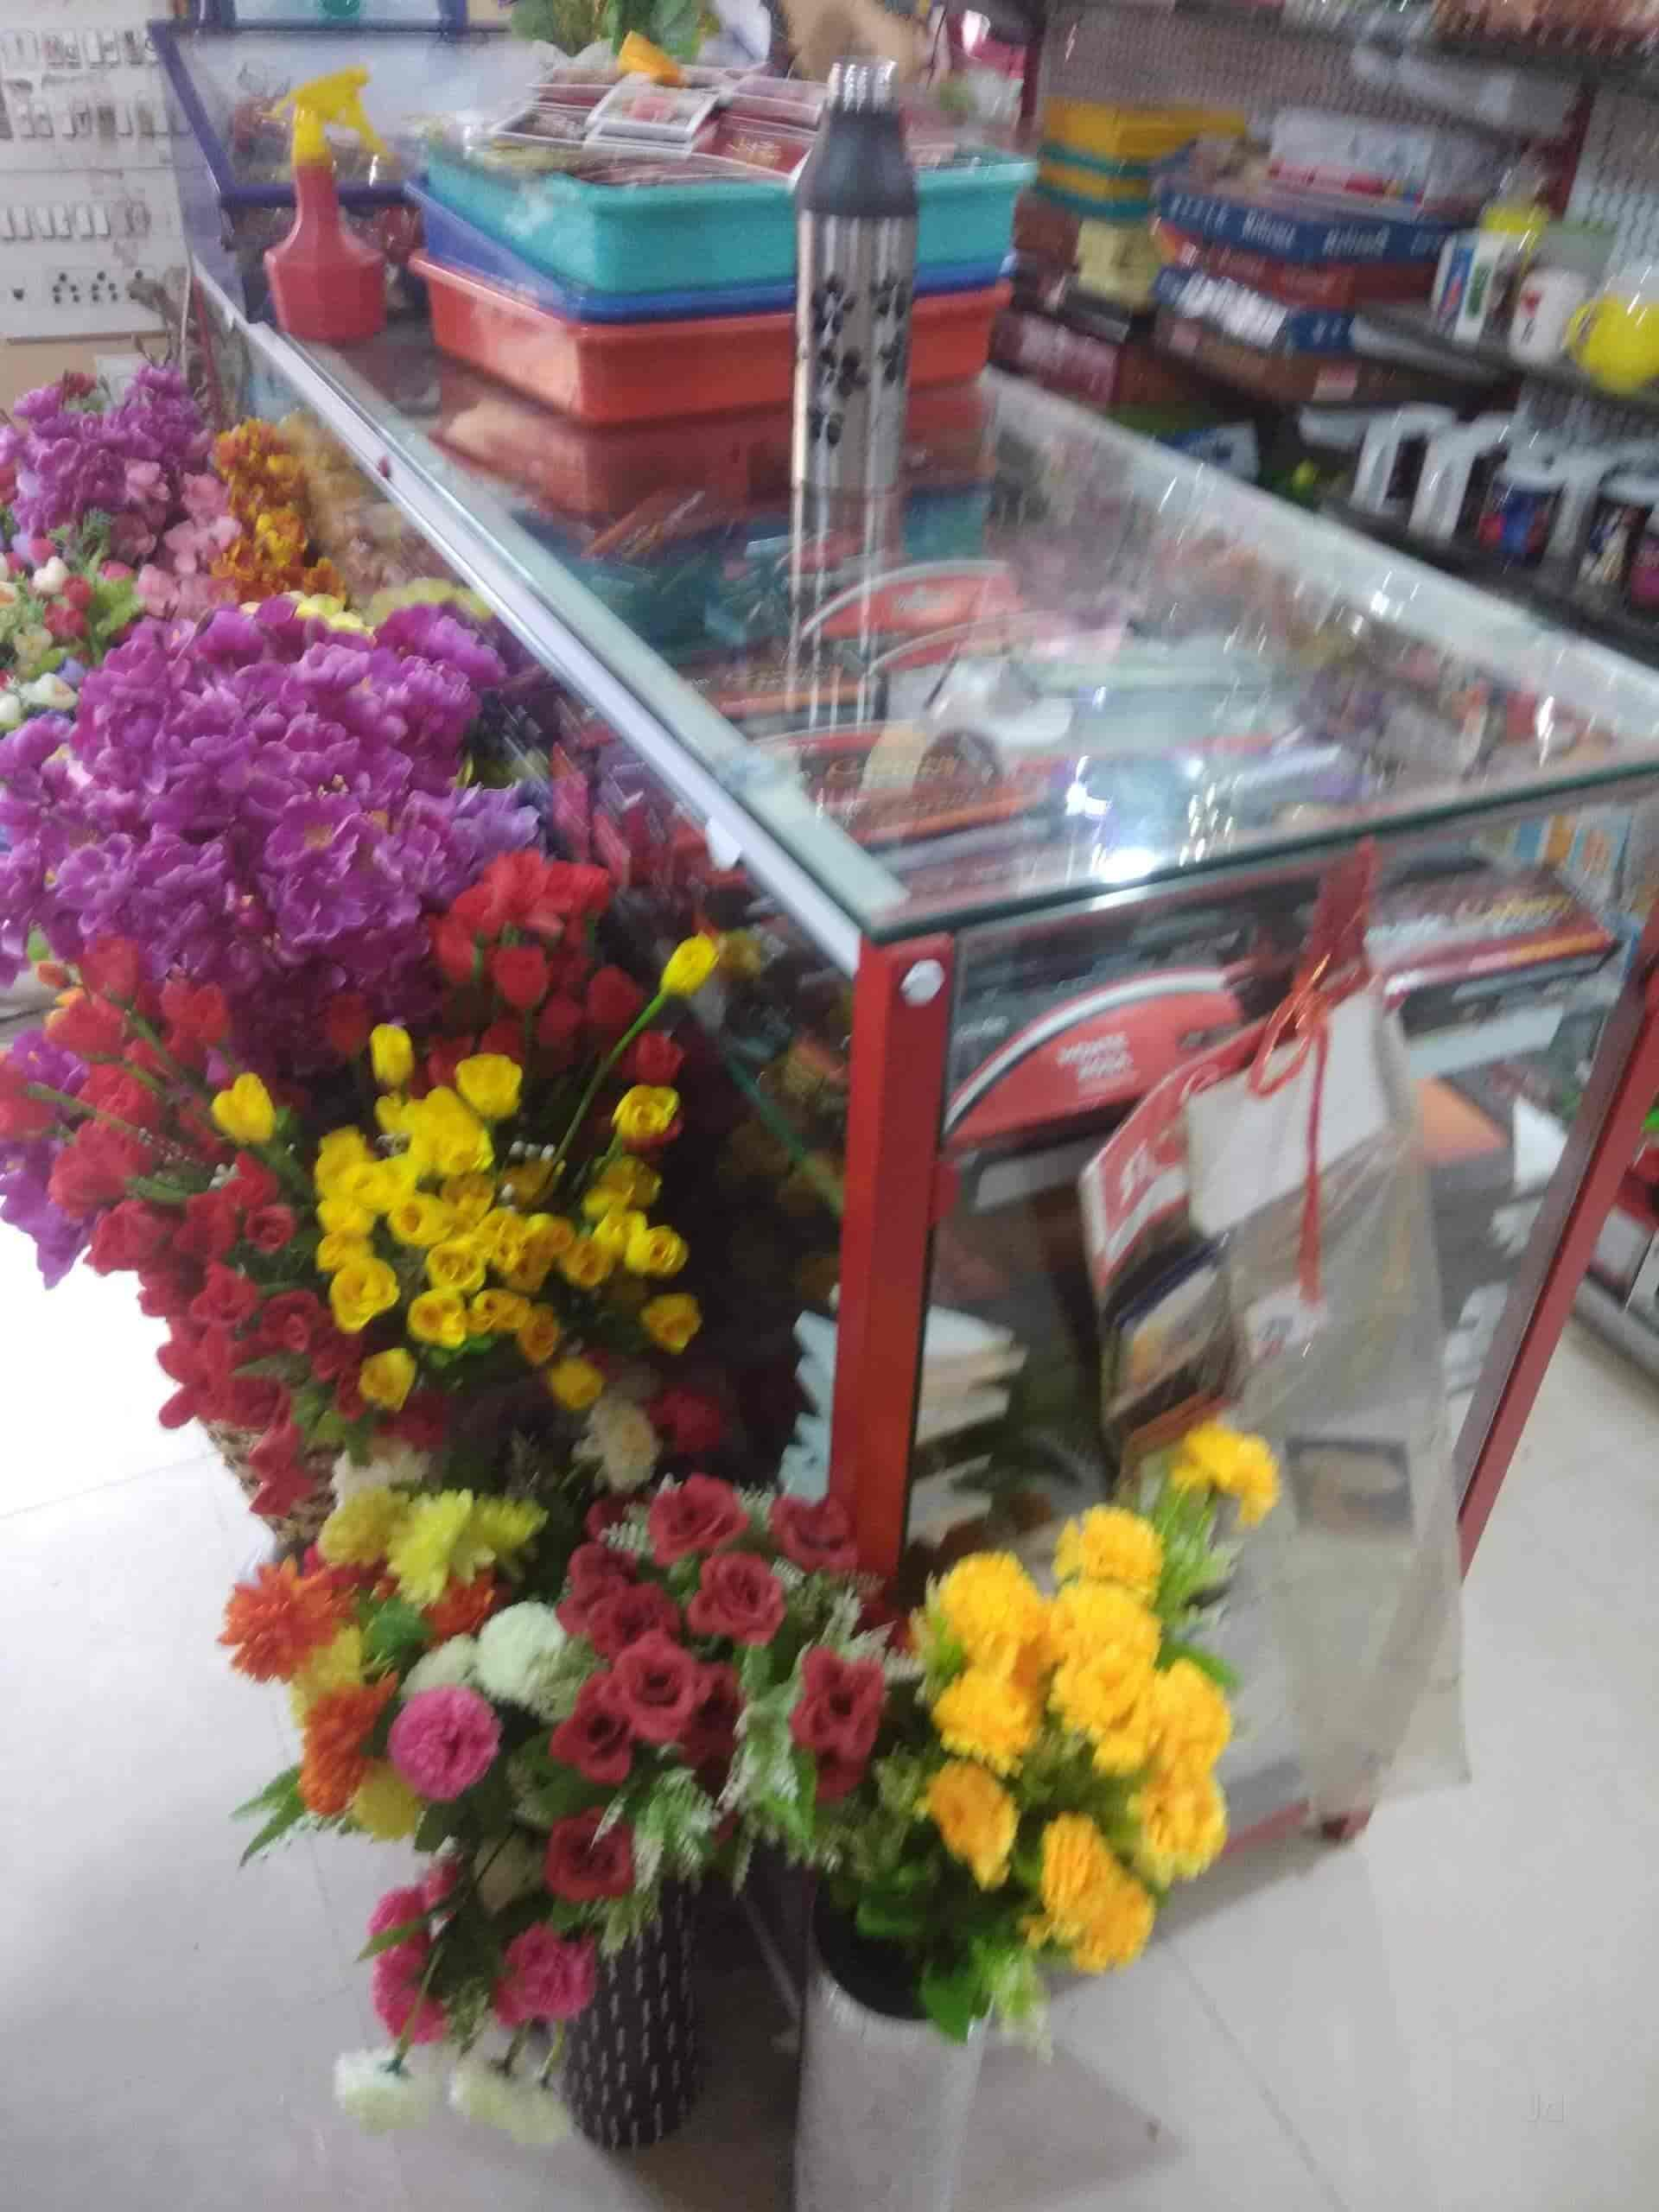 My My Cards And Gifts, Kalol - Gift Shops in Gandhinagar-gujarat - Justdial